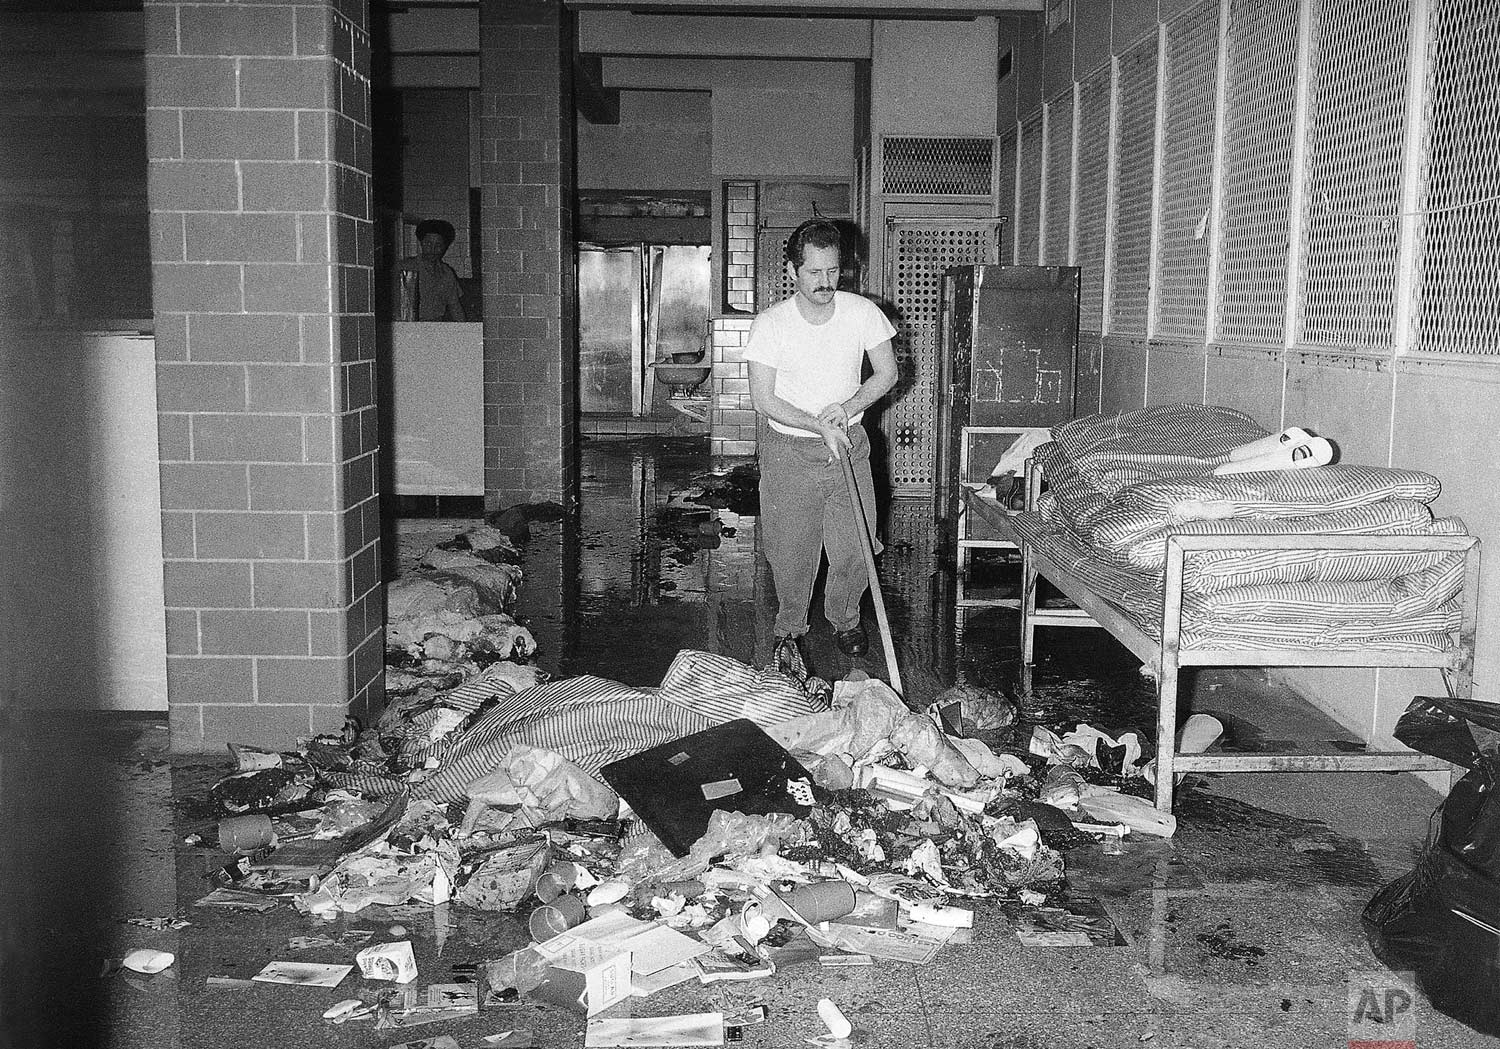 An inmate cleans up mess at the Bronx House of Detention in New York on Thursday, July 14, 1977. Corrections officials said inmates caused damage in three dormitories during the electric power failure that struck New York on Wednesday, July 13. (AP Photo/Marty Lederhandler)